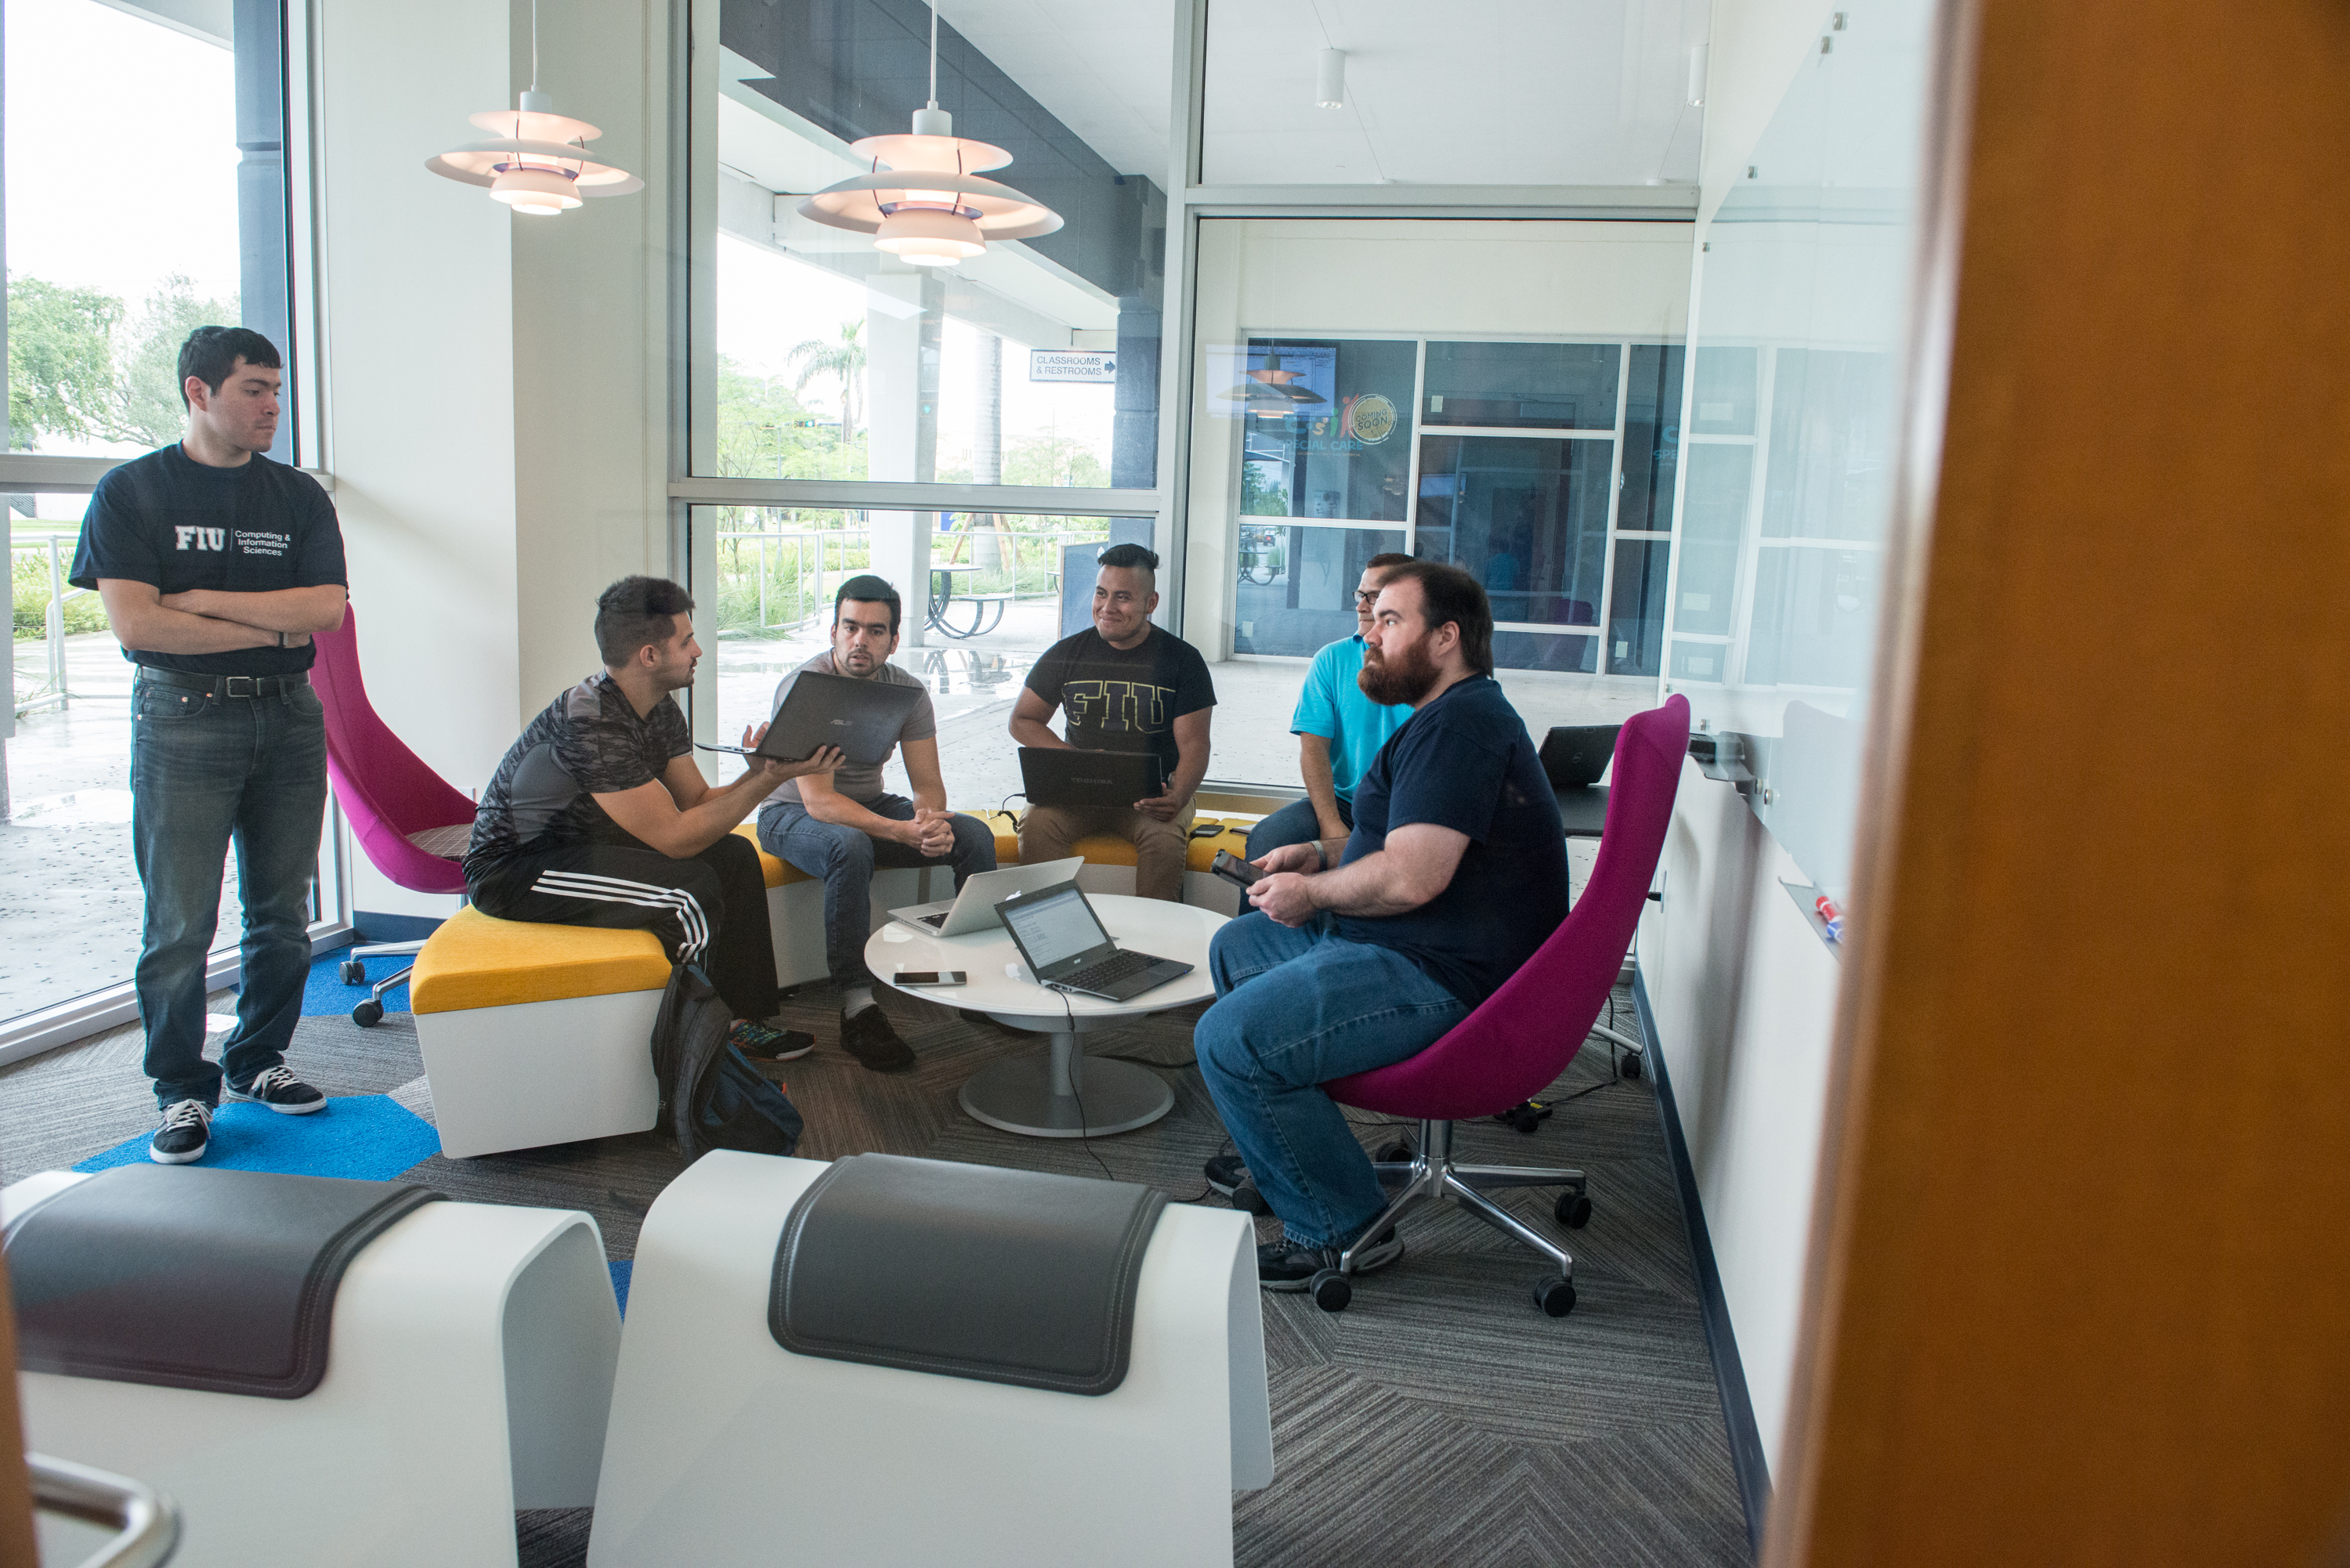 Students in the School of Computing and Information Sciences collaborate on projects at FIU's Tech Station, which will be home to MangoHacks March 4 to 6.